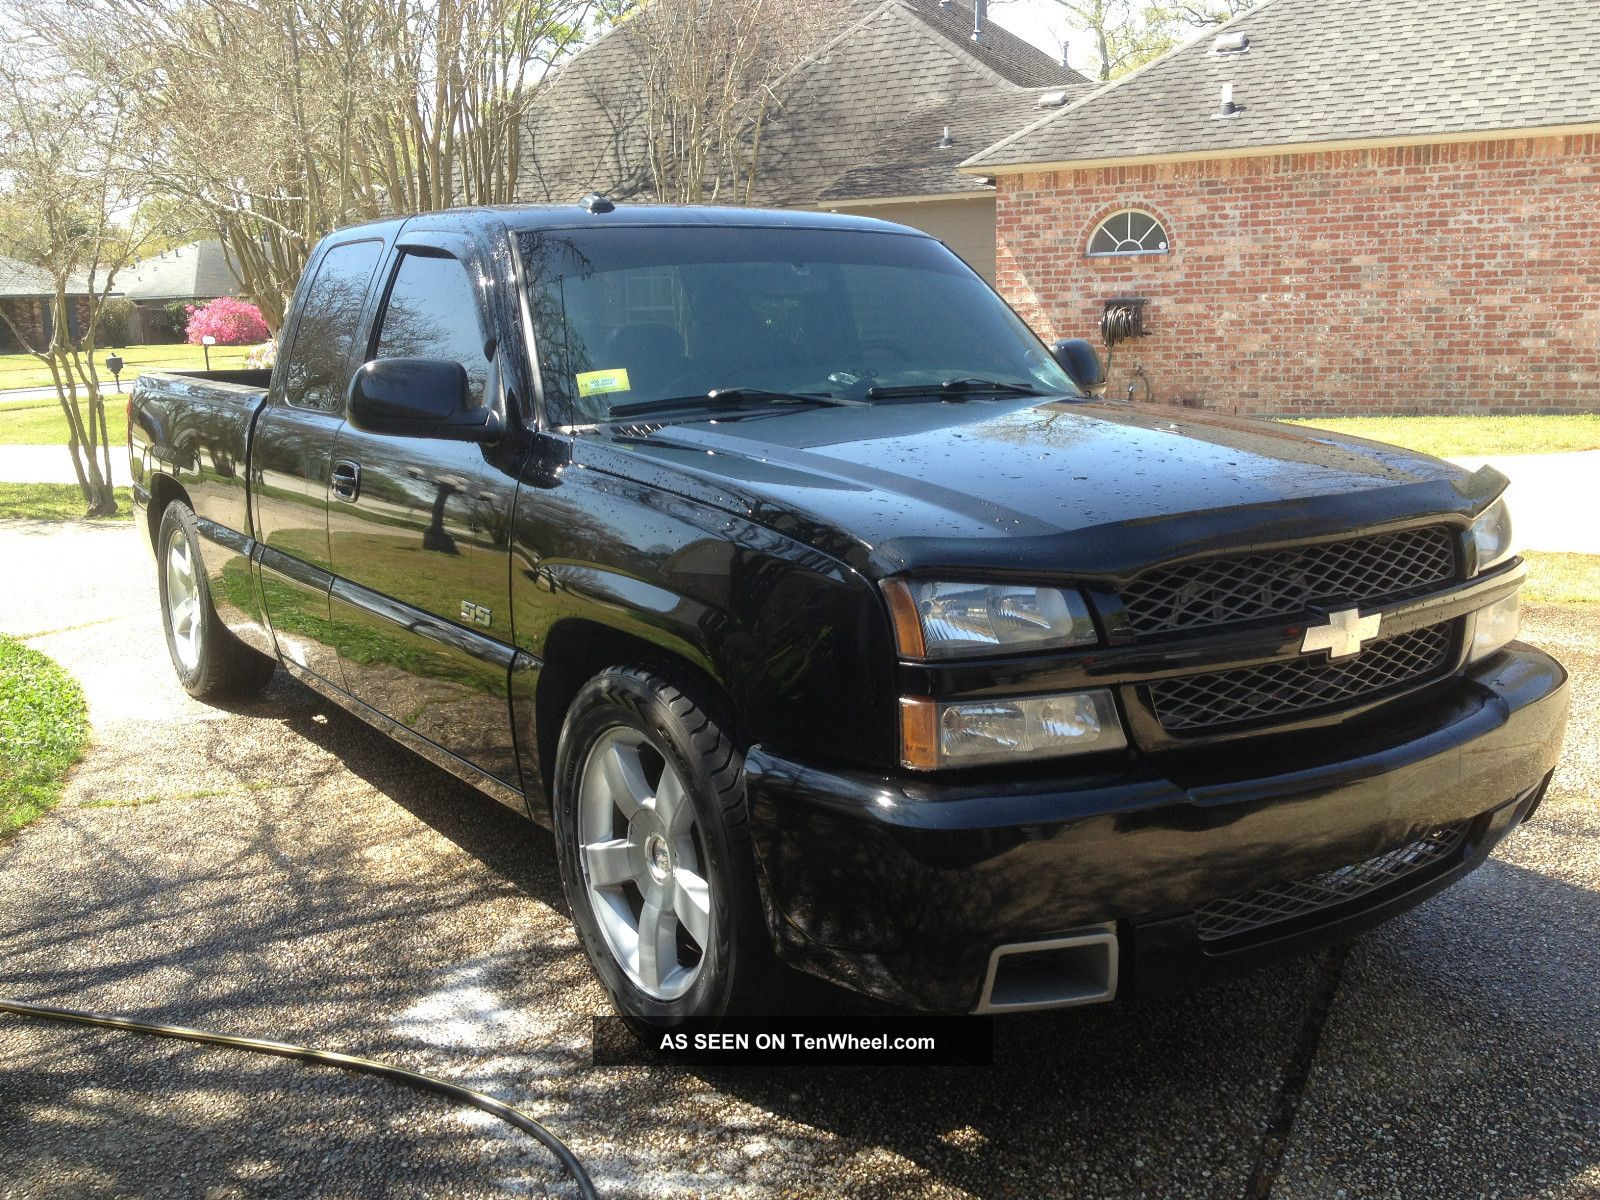 2003 chevrolet silverado ss black. Black Bedroom Furniture Sets. Home Design Ideas